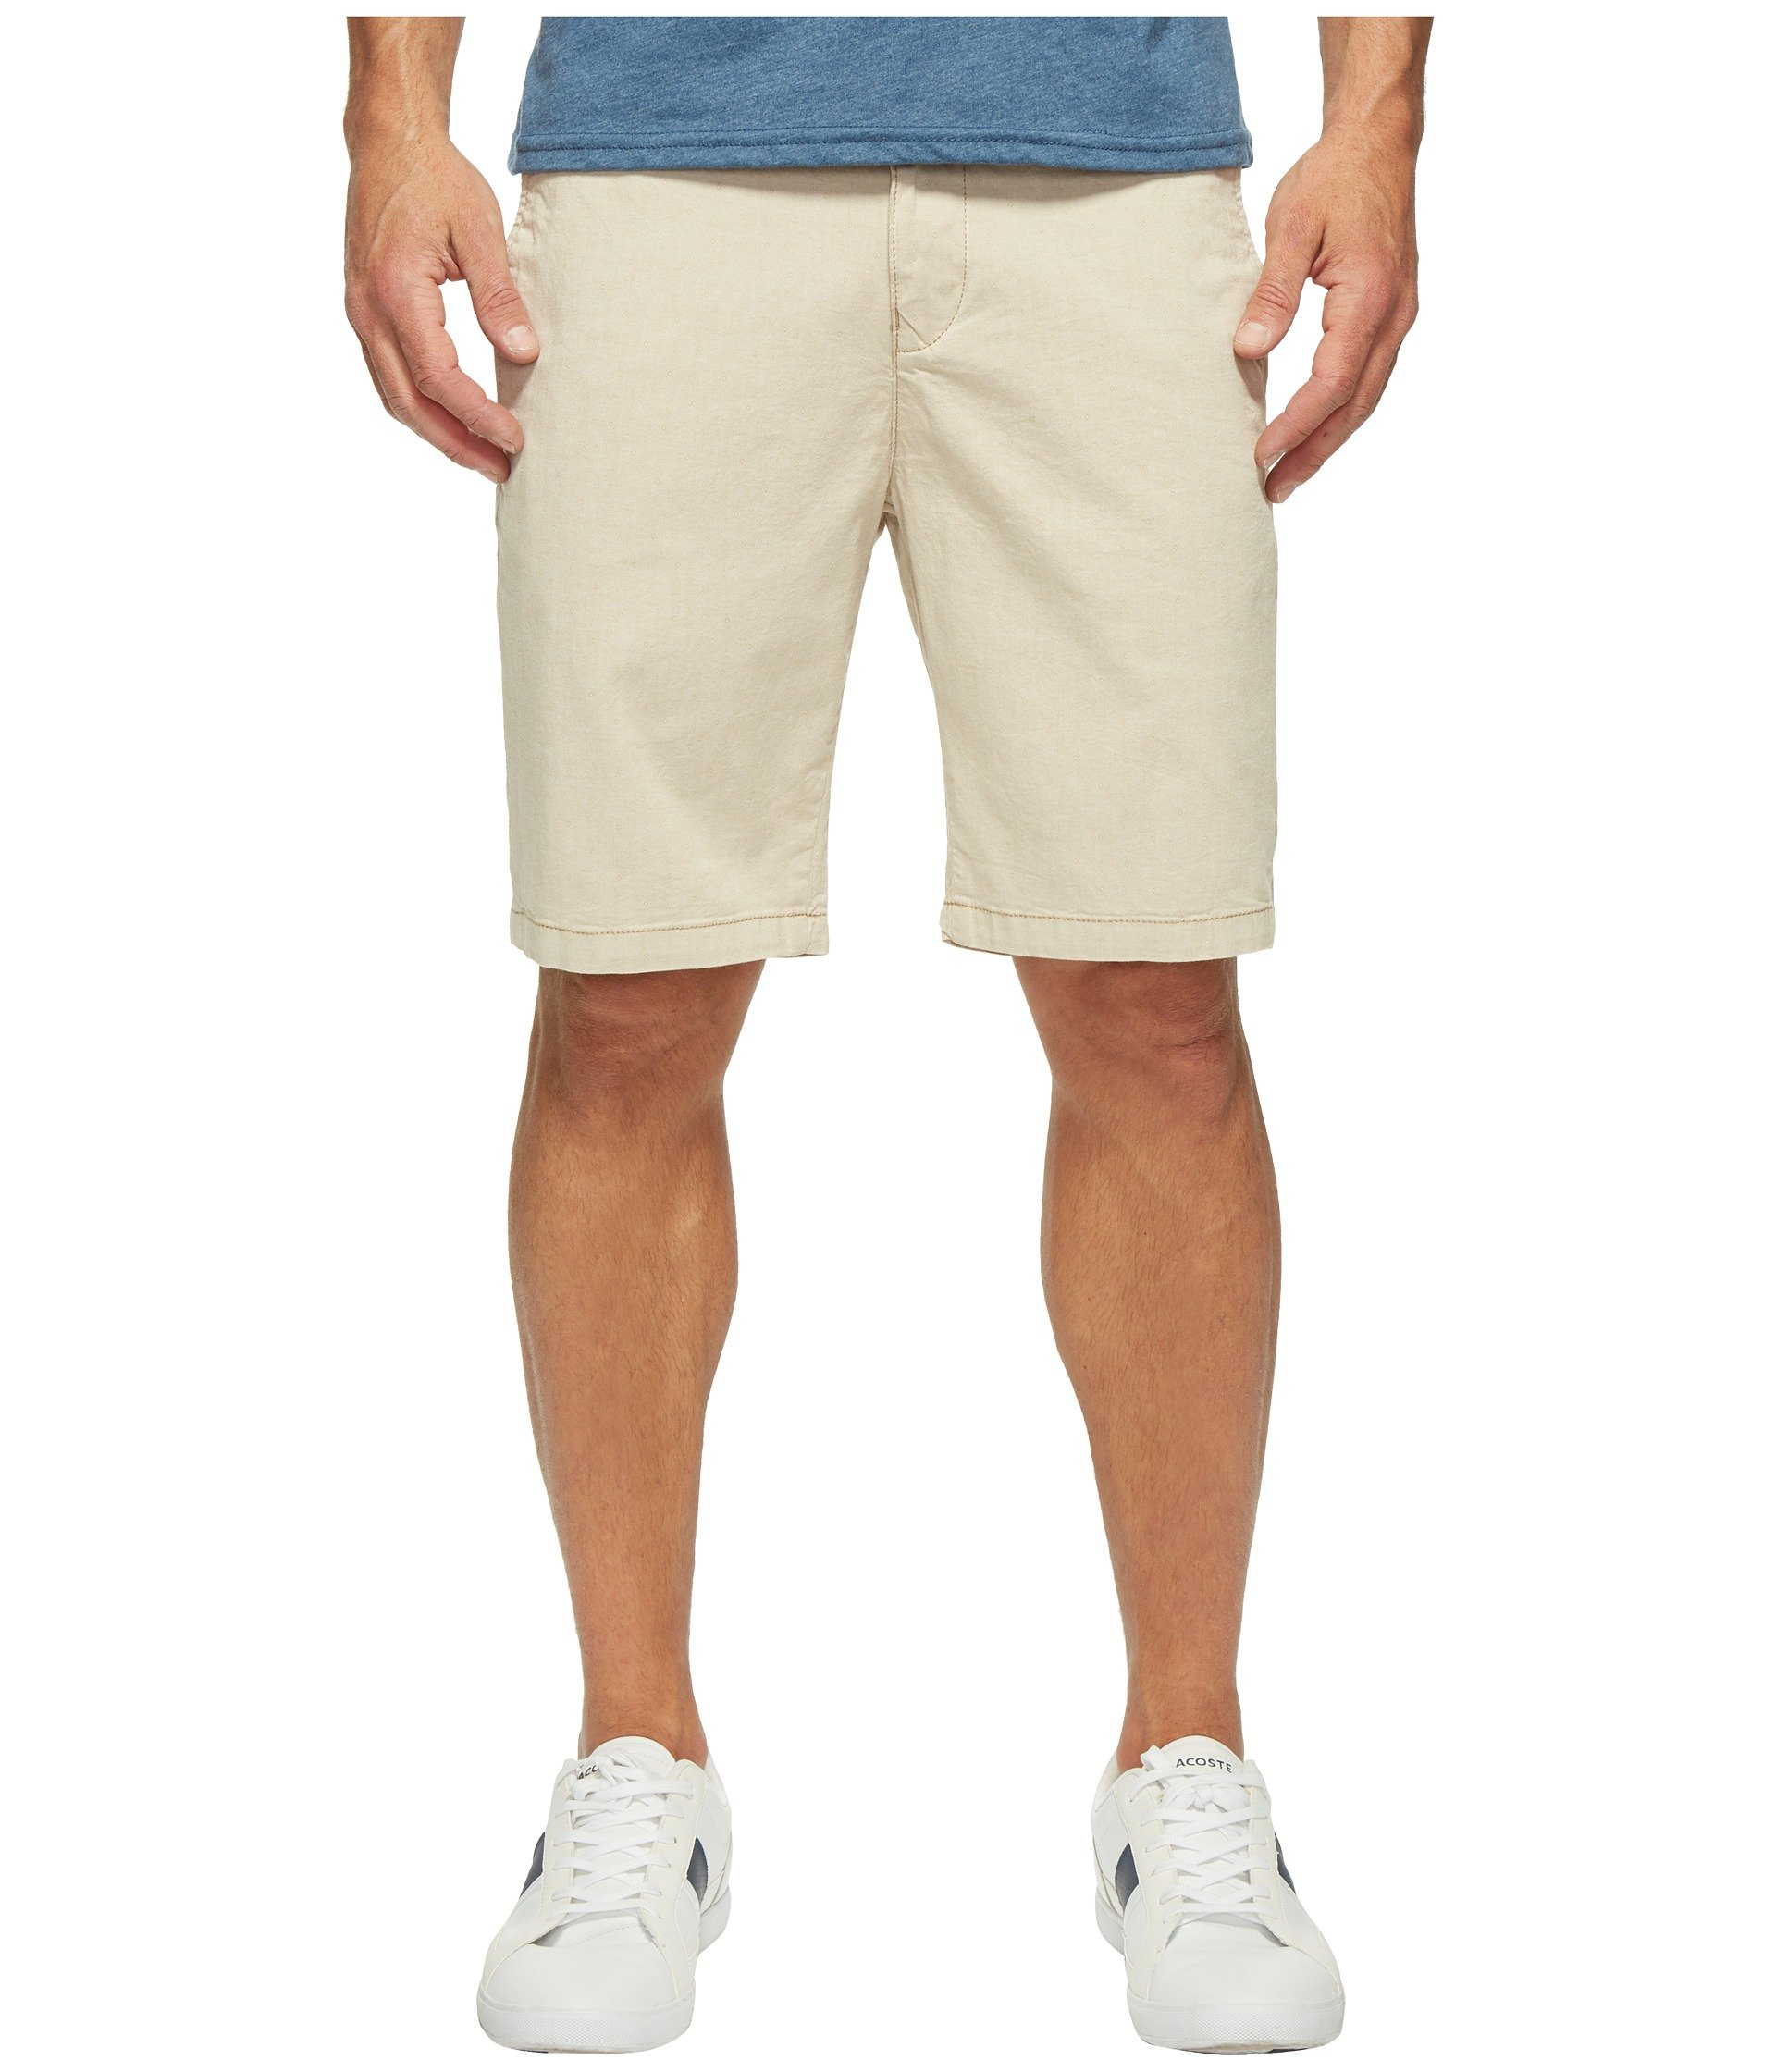 34 Heritage Men's Nevada in Beige Dot Twill Beige Dot Twill Shorts by 34 Heritage (Image #1)